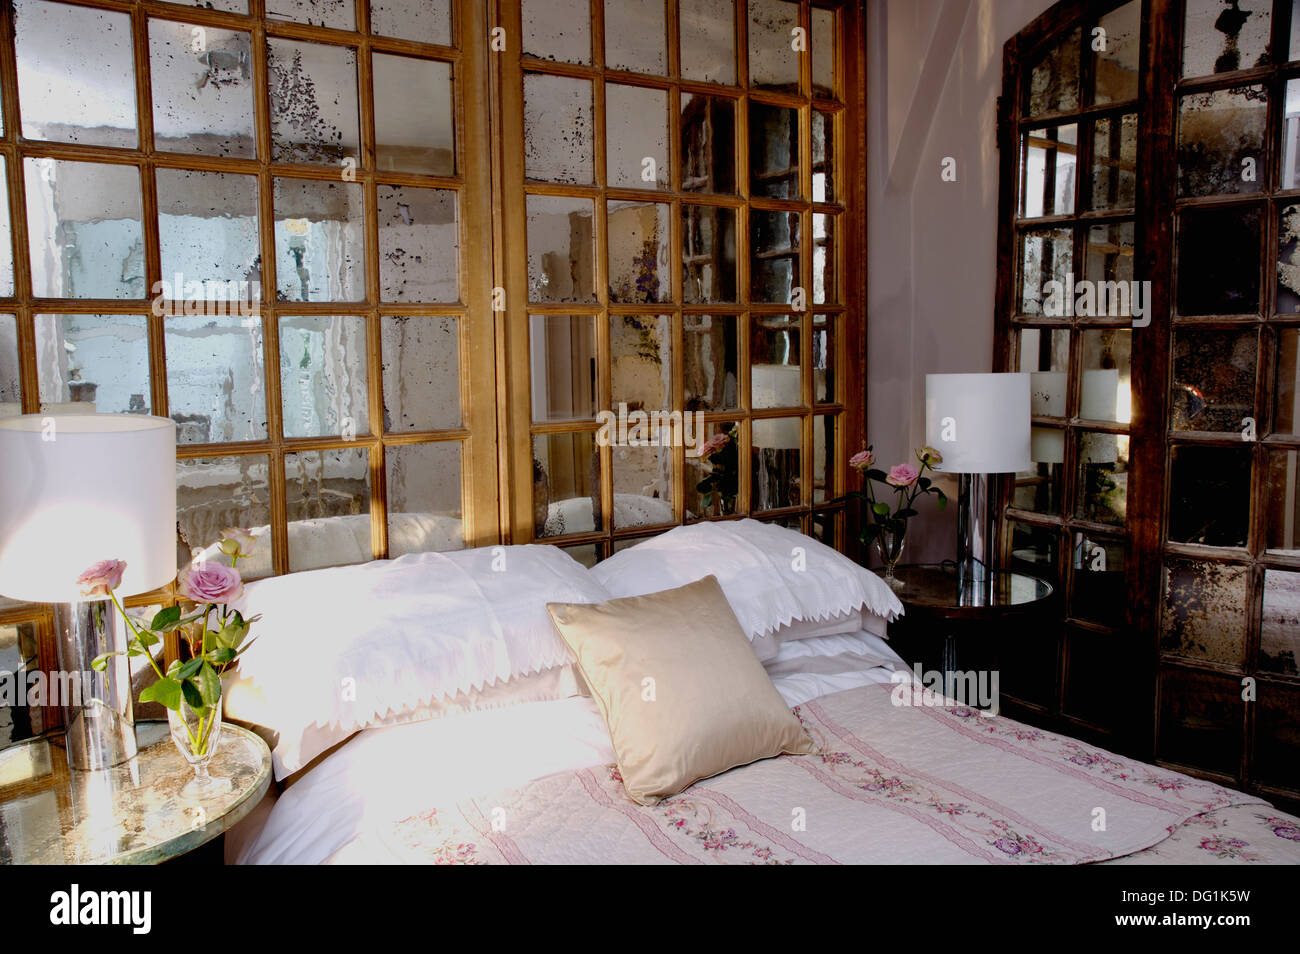 Mirrored Window Frame Doors On Wall Behind Bed With White